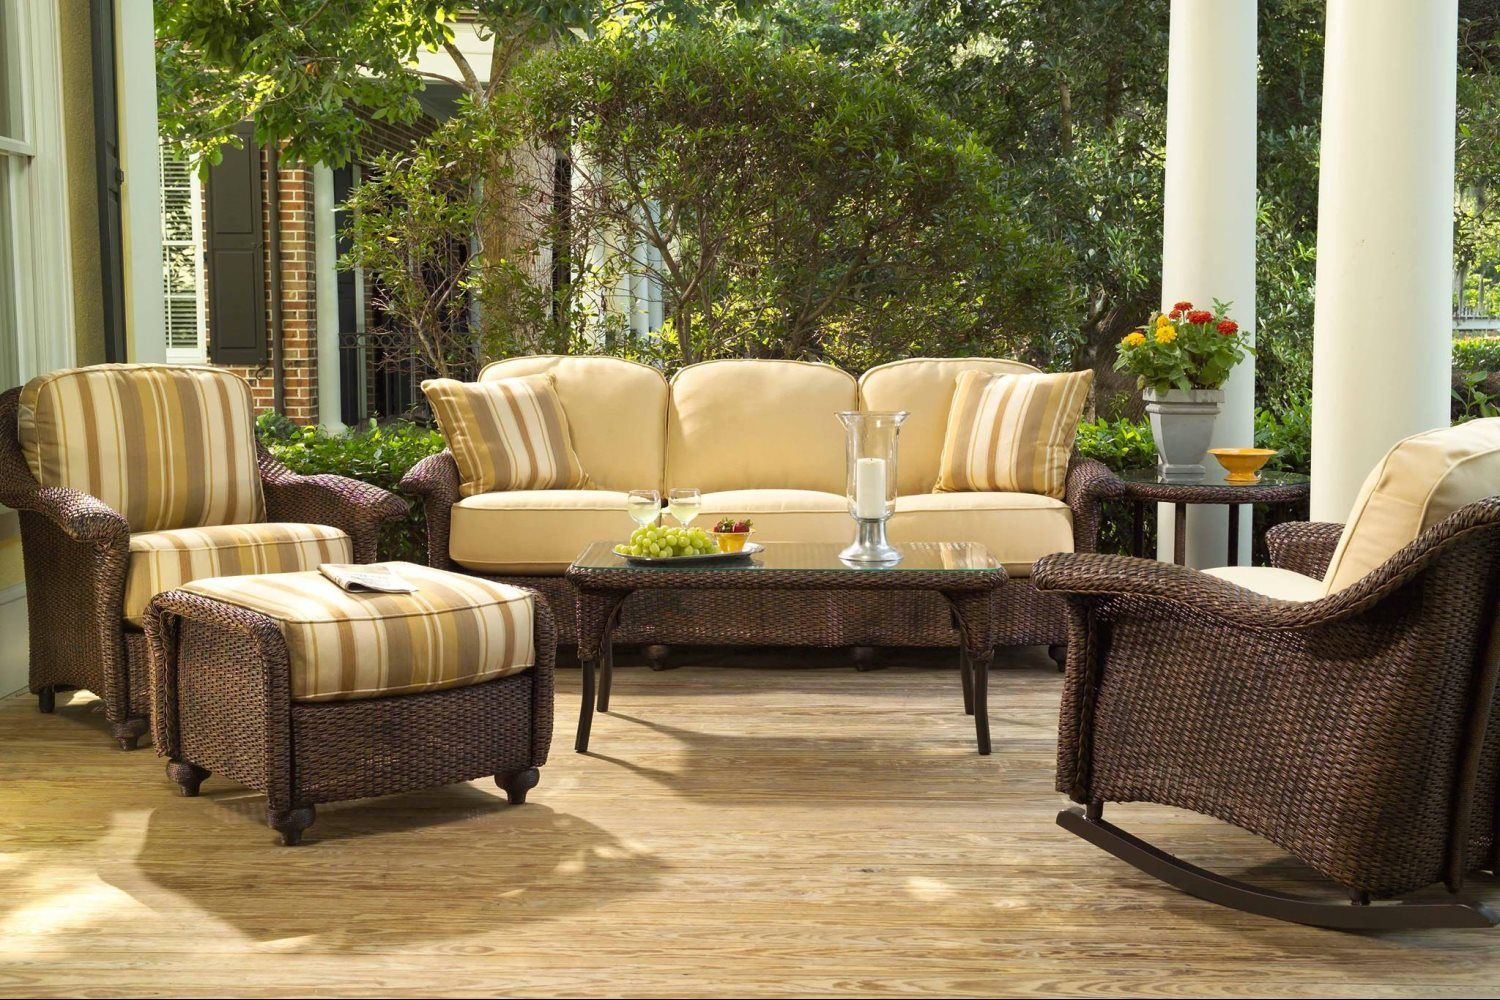 Discover The Lloyd Flanders Wicker Patio Furniture. Commercial Grade  Outdoor Patio And Pool Furniture From Contract Furnishings International